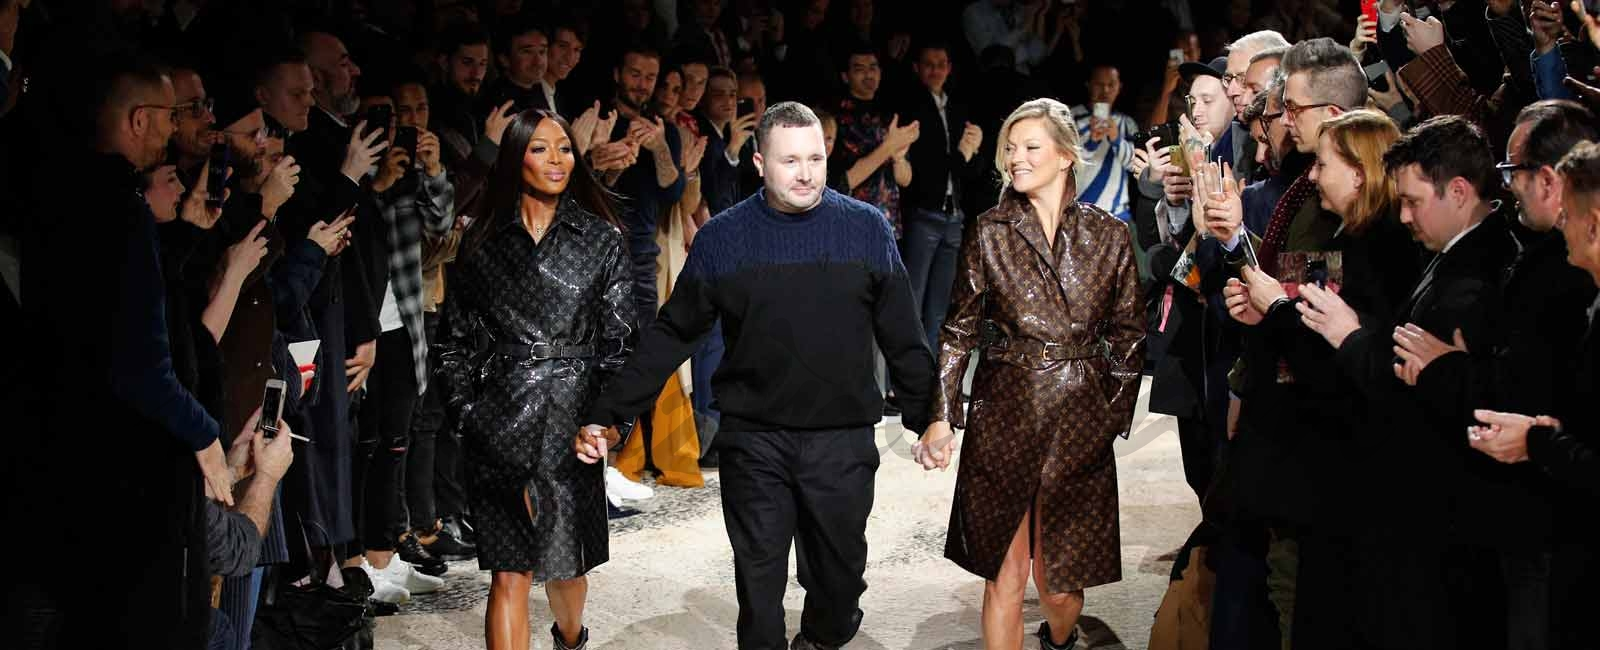 Kim Jones se despide de Louis Vuitton de la mano de Naomi Campbell y Kate Moss